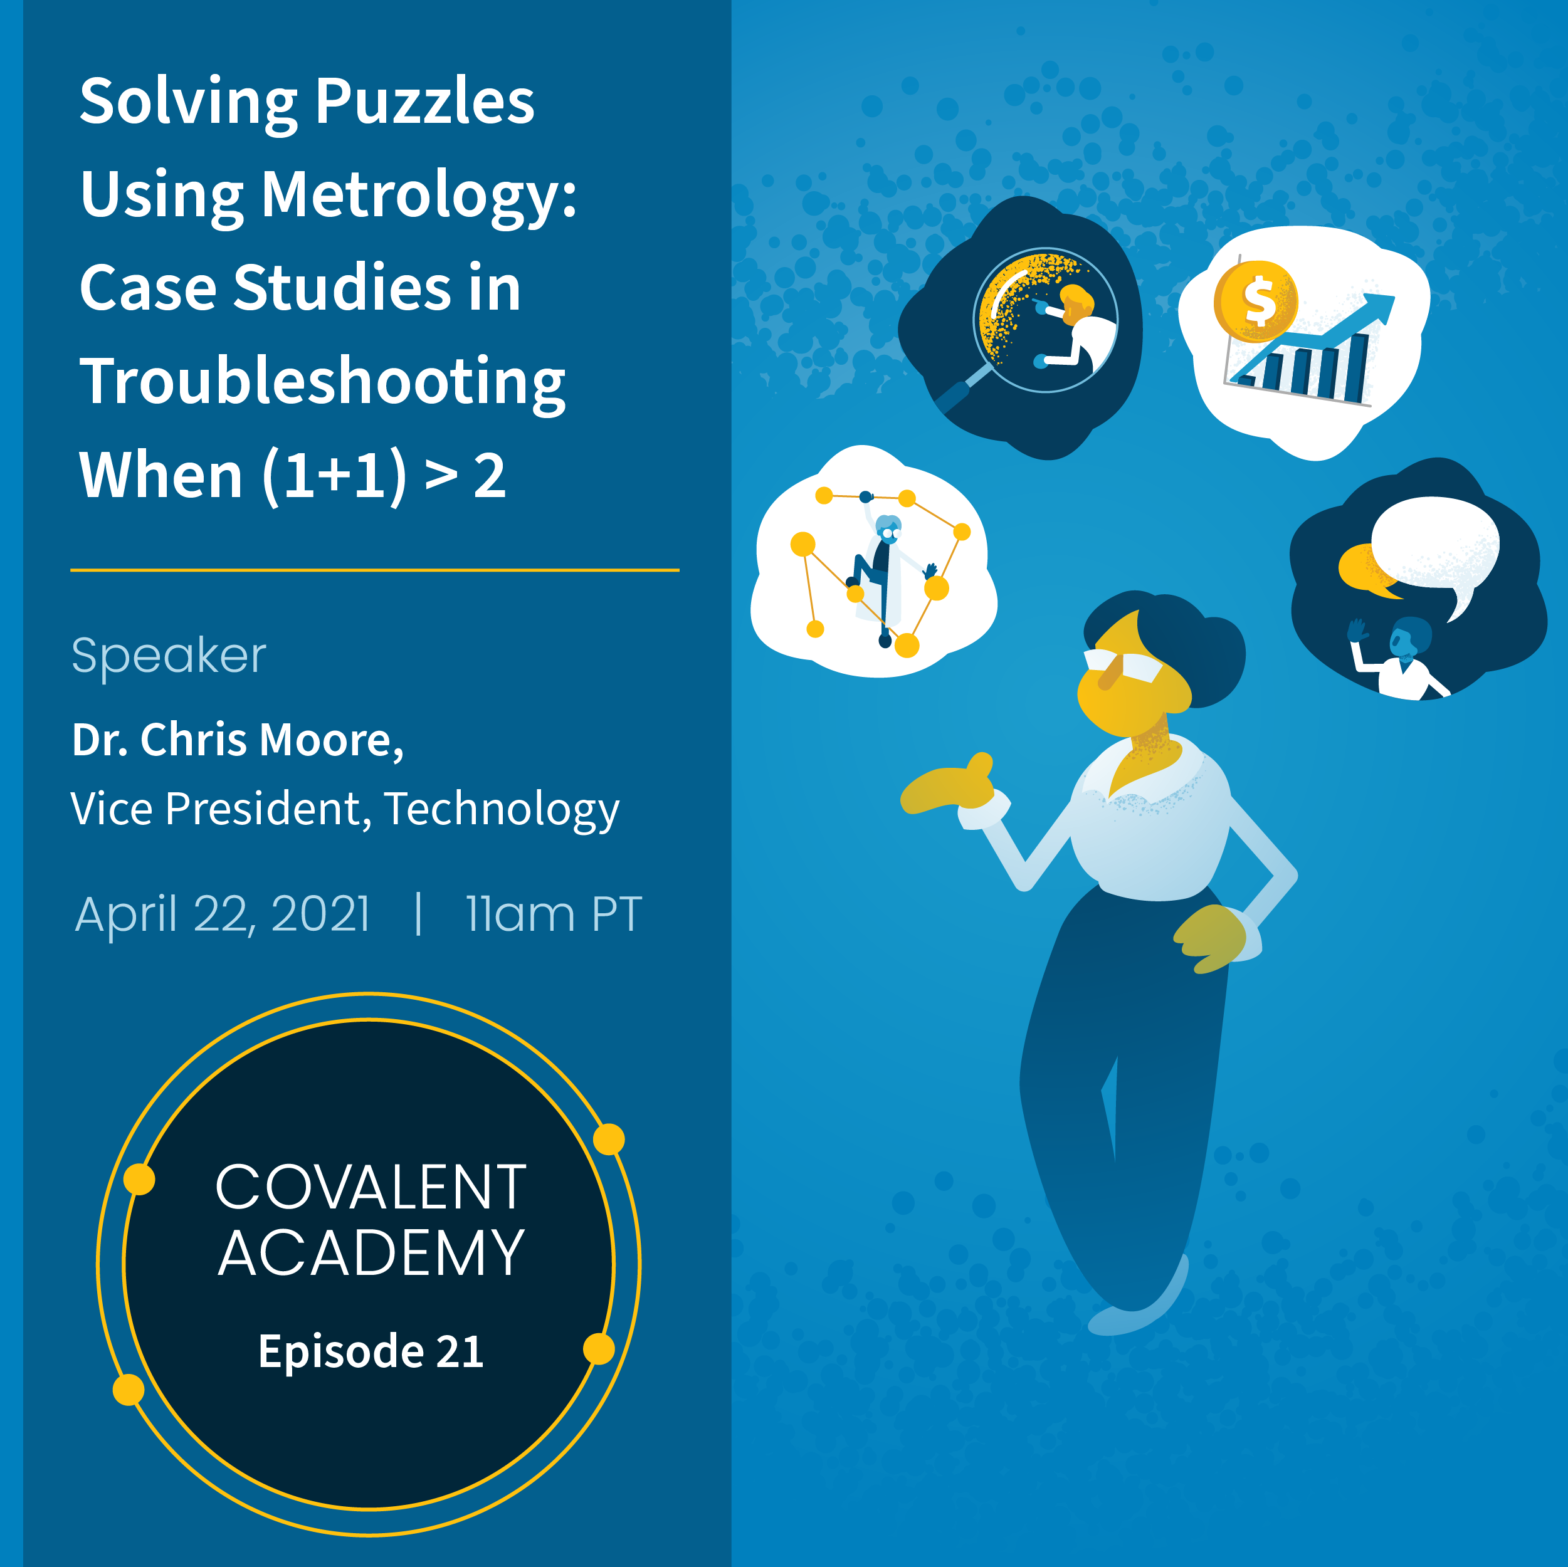 Solving Puzzles Using Metrology: Case Studies in Troubleshooting